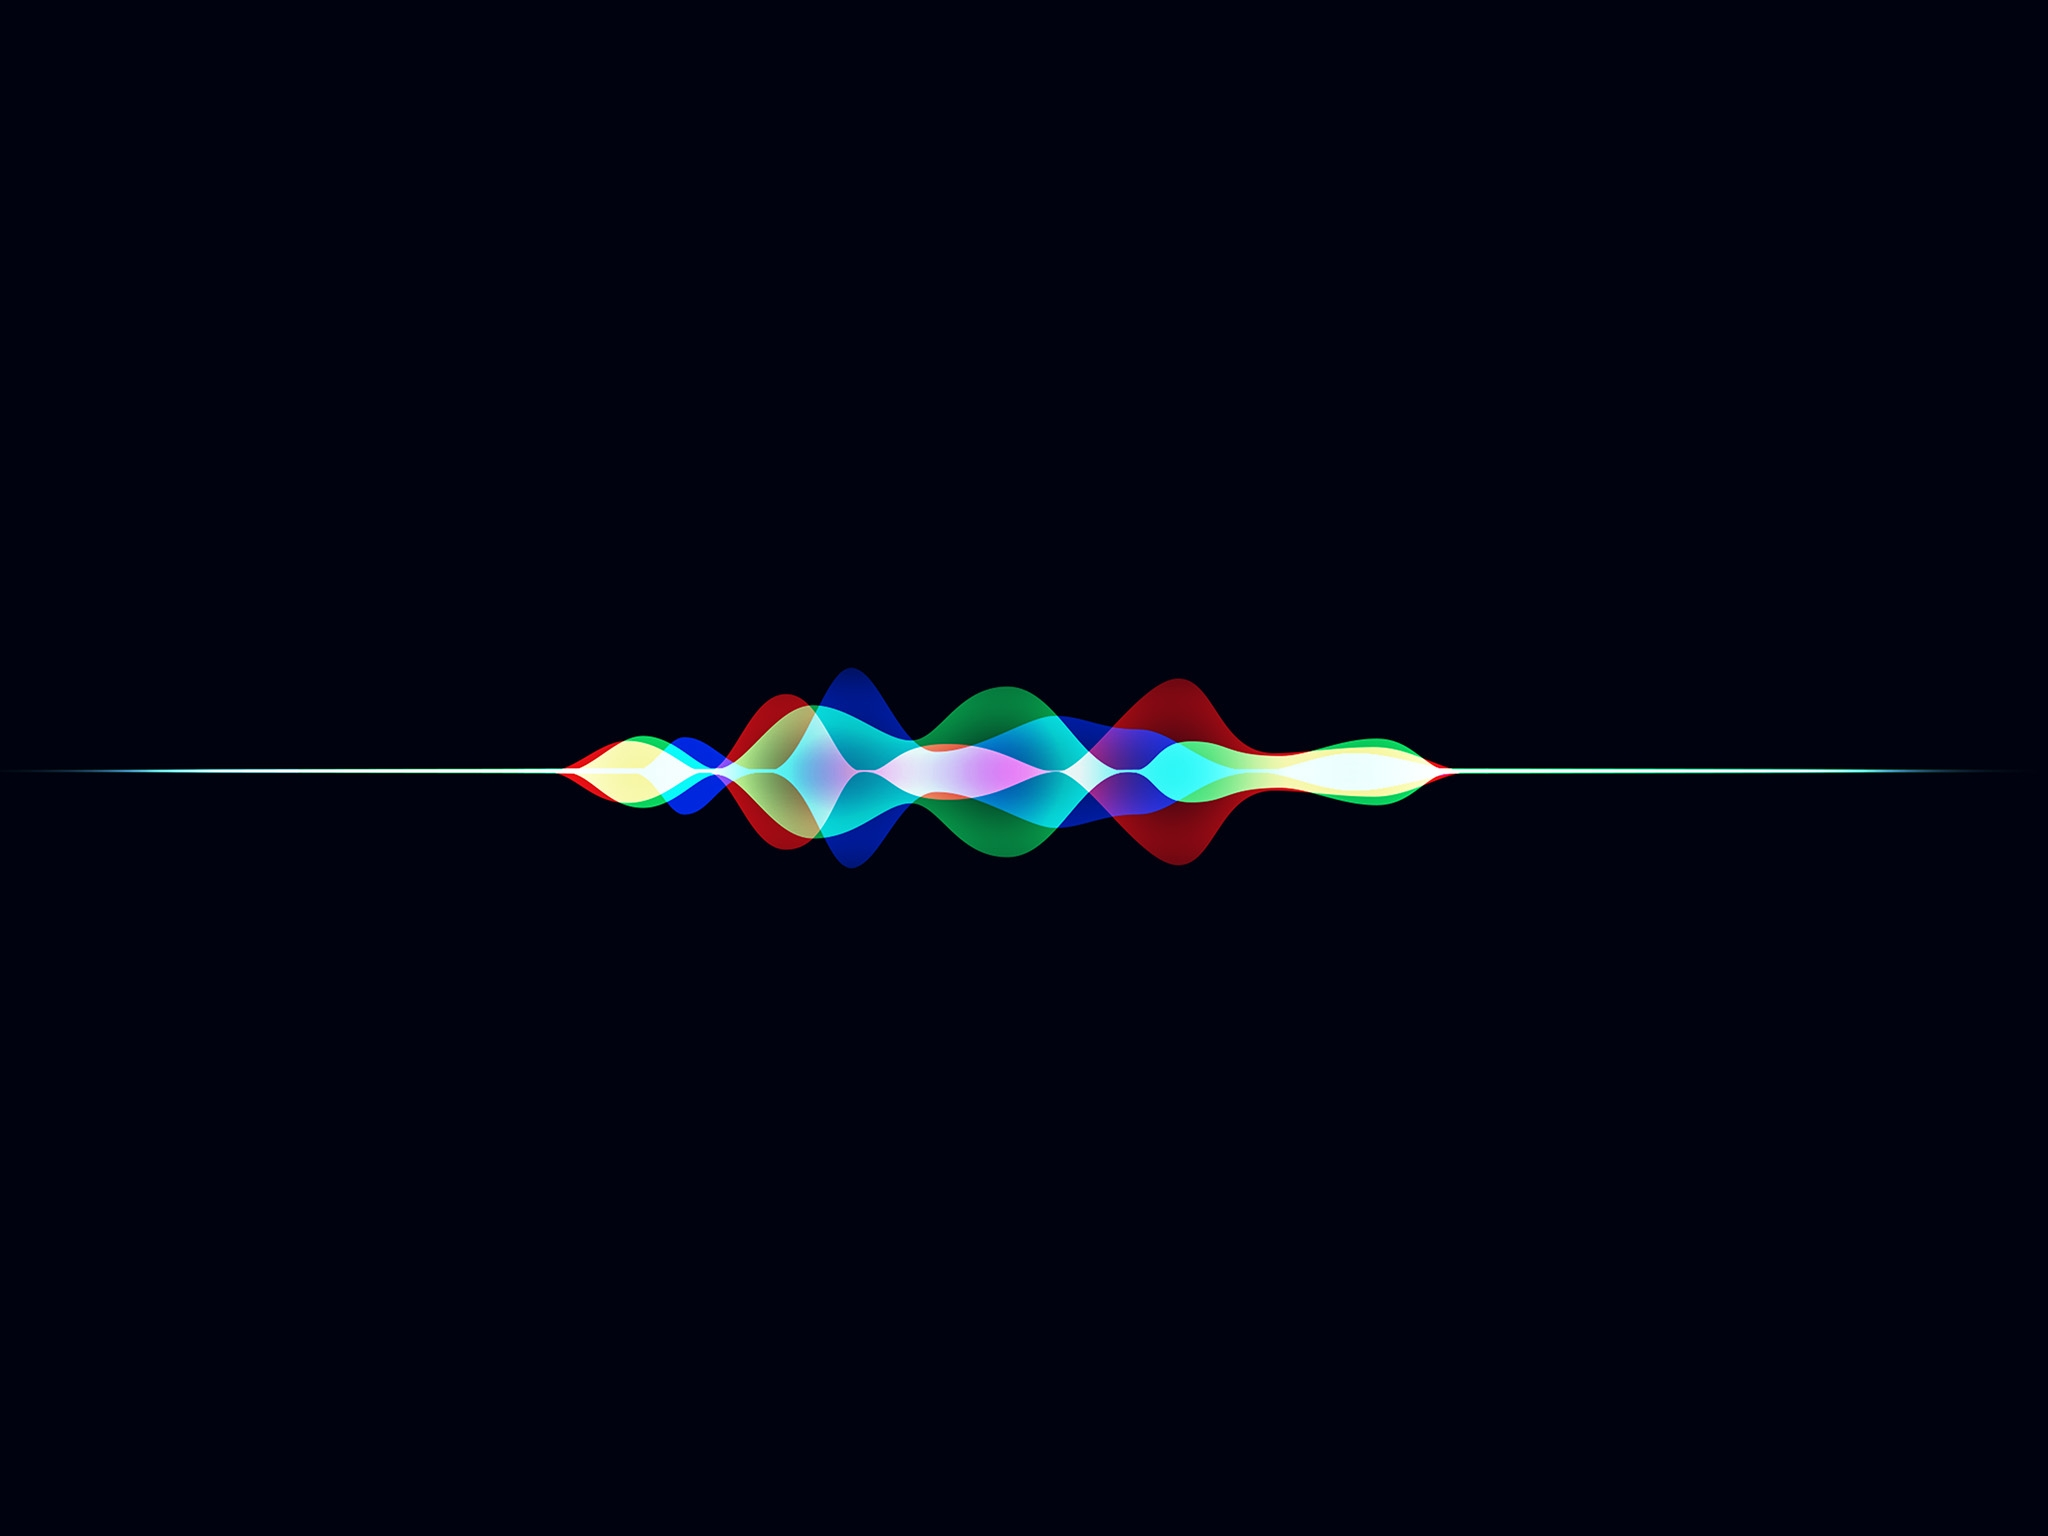 APPLE: ONGOING